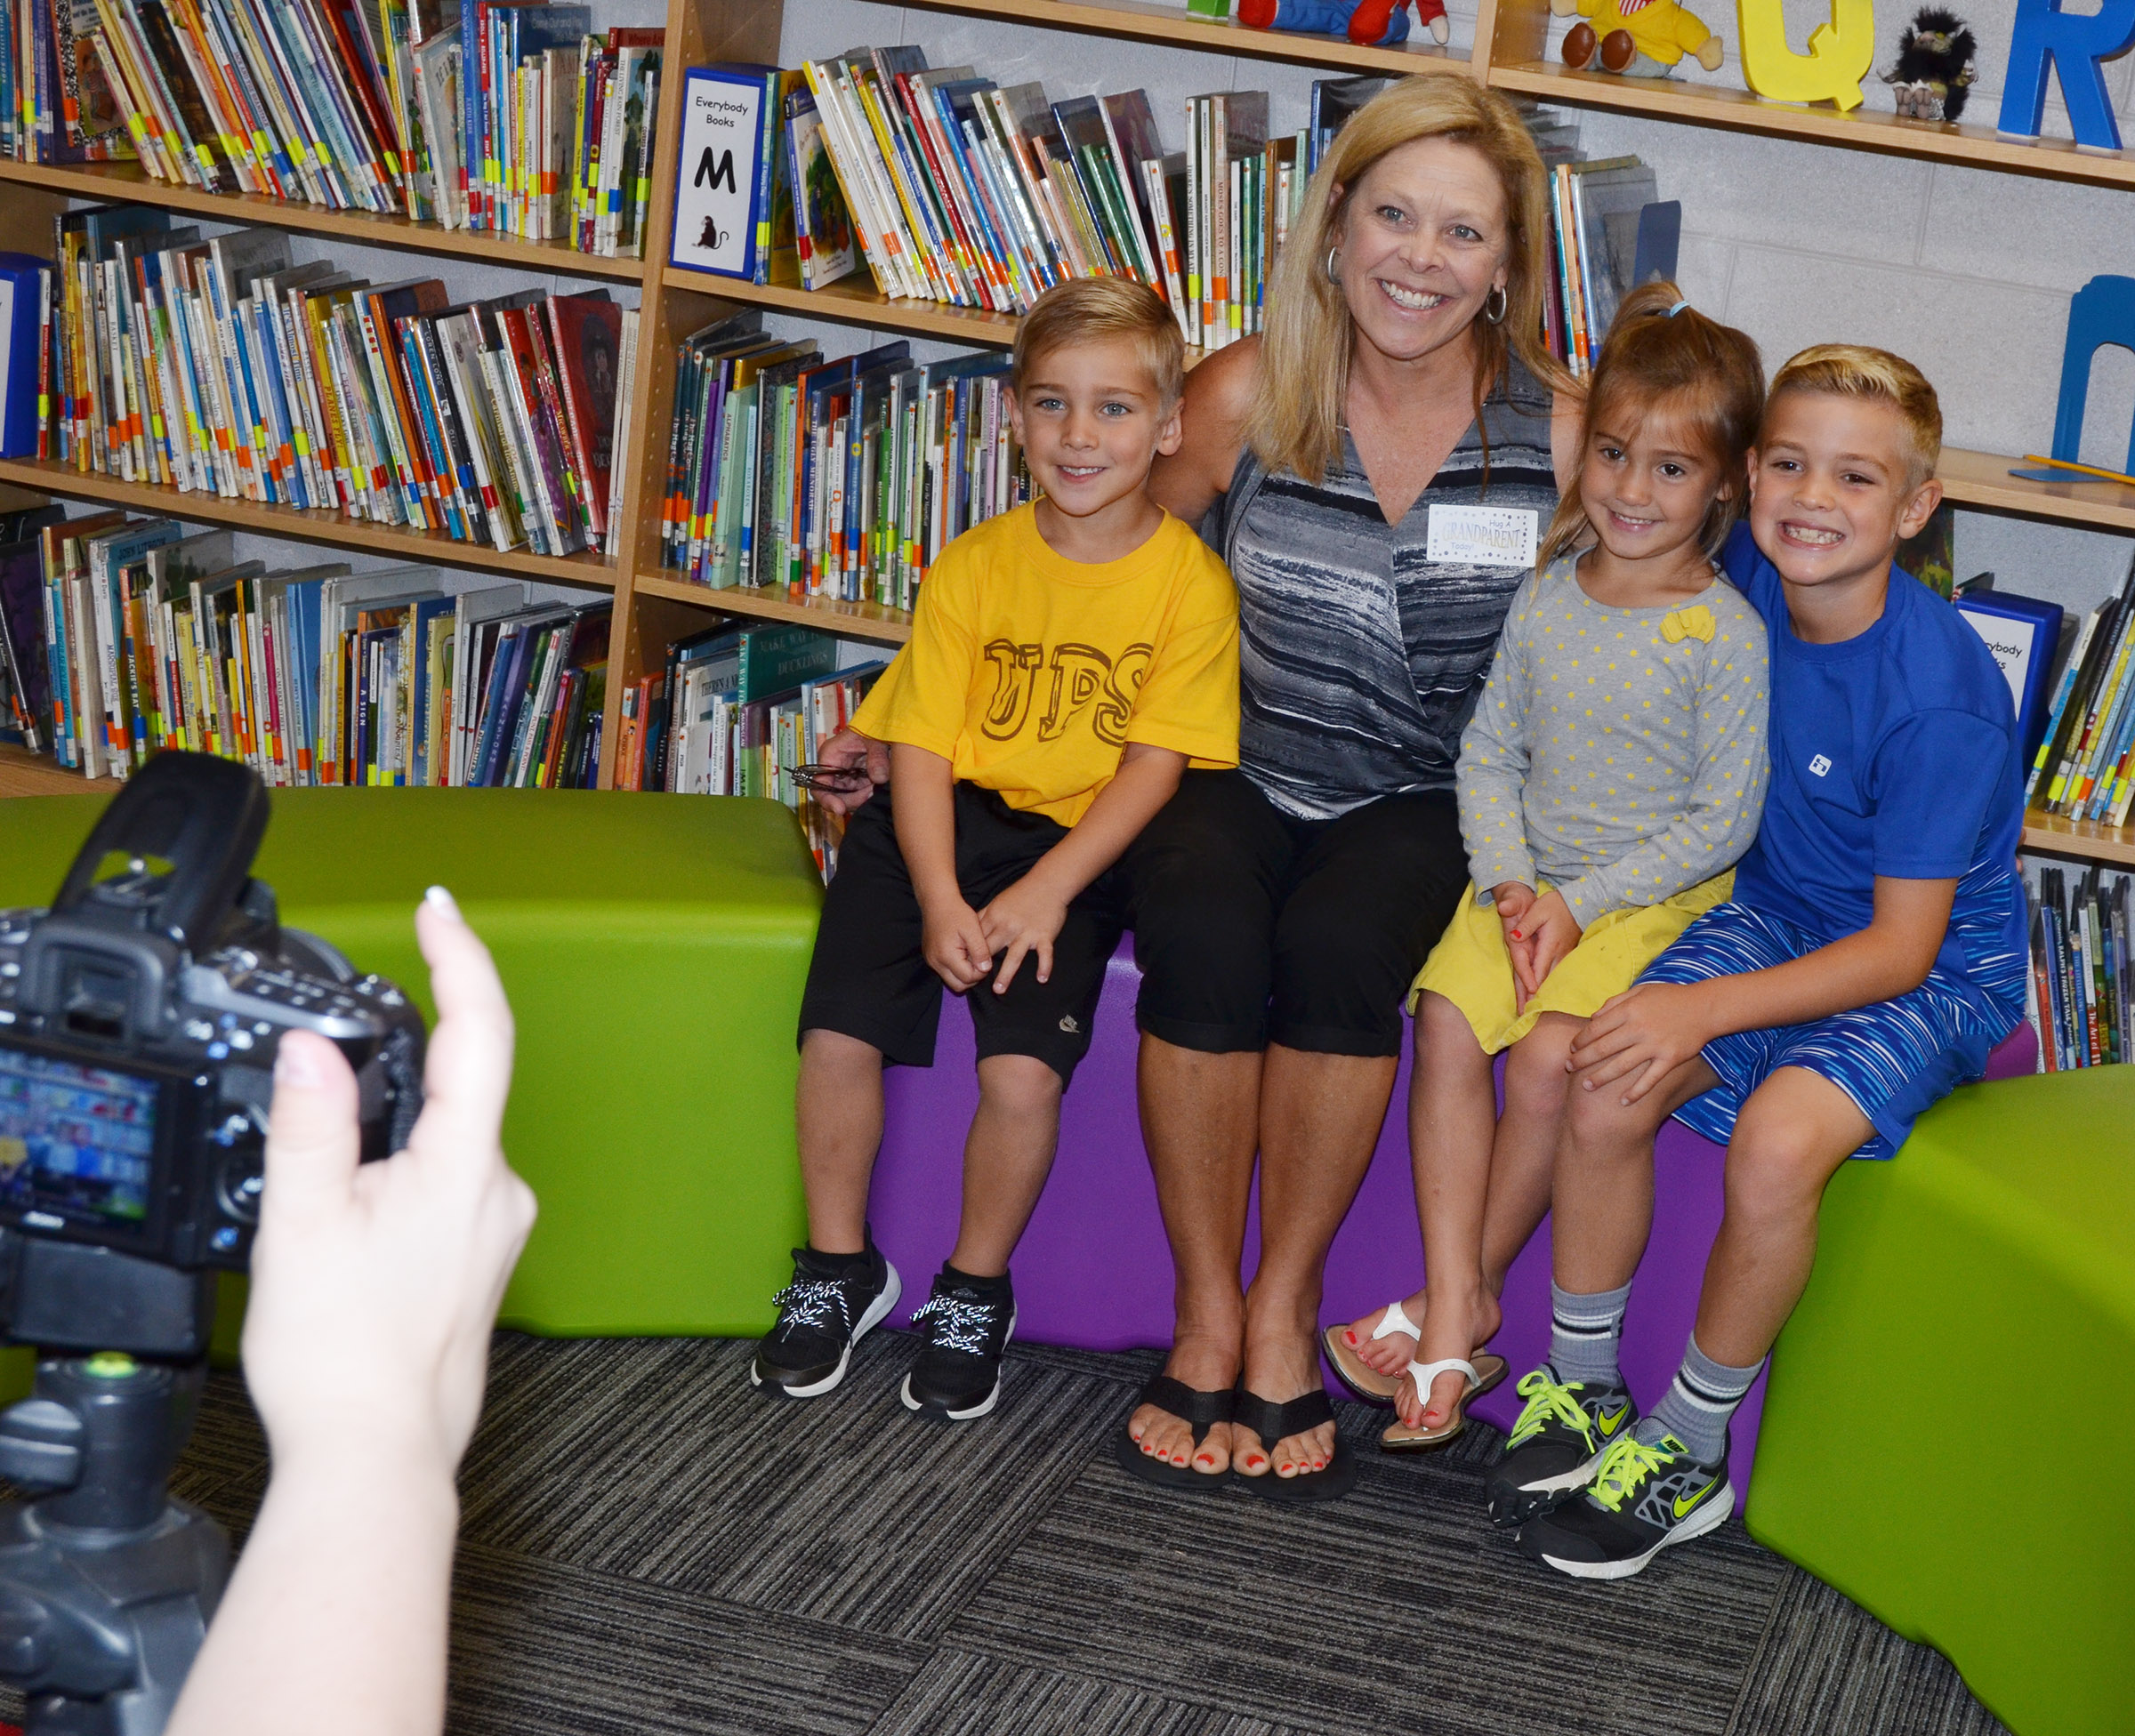 From left, CES kindergarteners Dane Gray and Blakely Gray and second-grader Dax Gray smile for a photo with their grandmother.